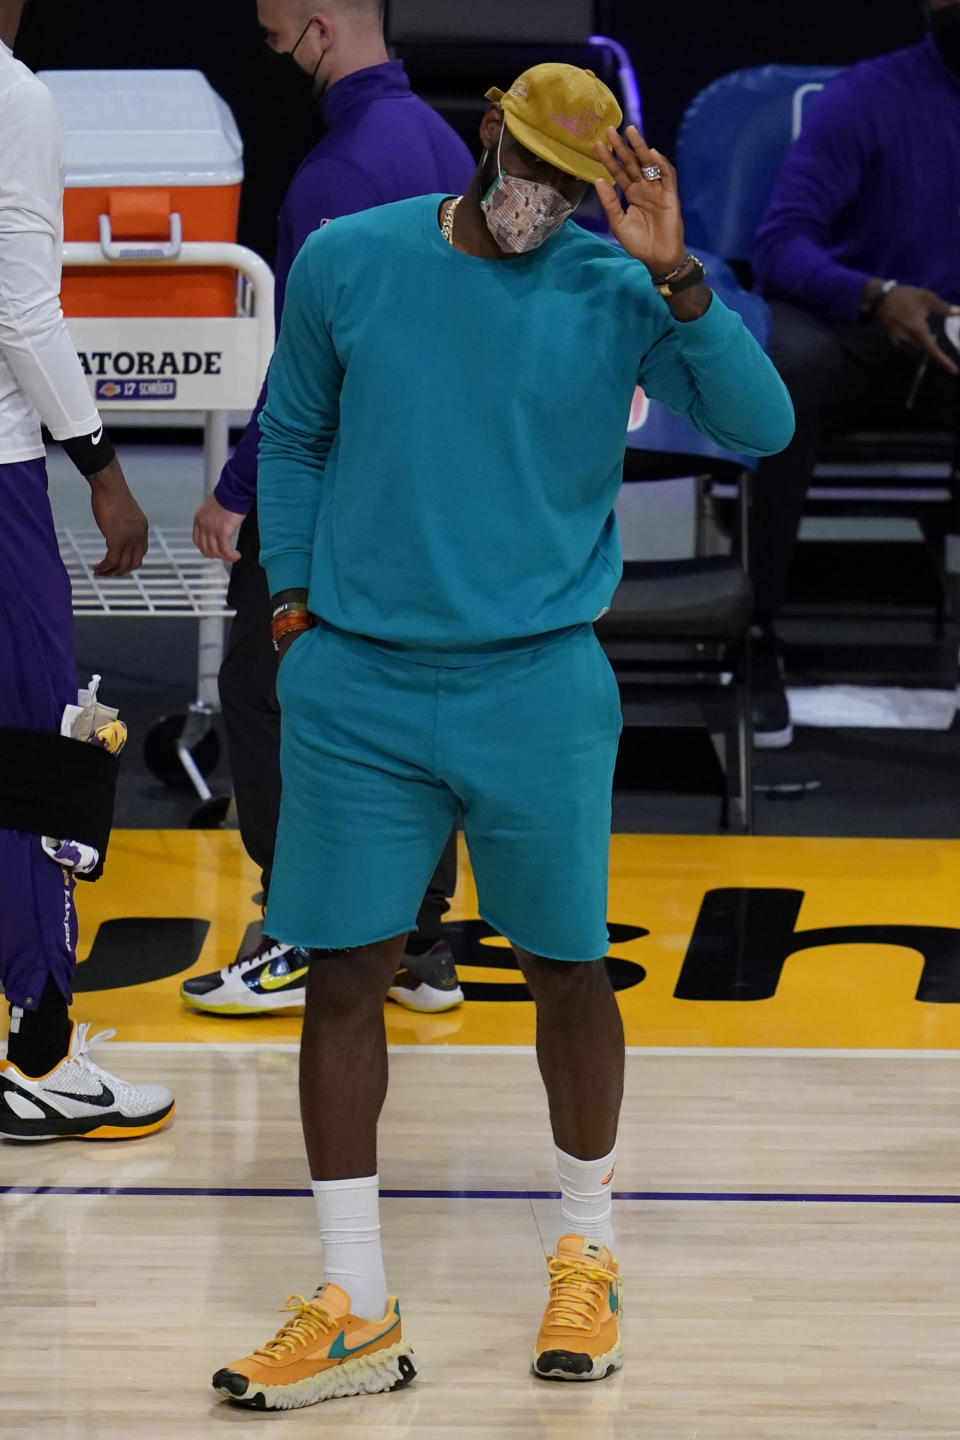 Los Angeles Lakers forward LeBron James (23) waves to a person across the court during the second quarter of a basketball game against the New York Knicks Tuesday, May 11, 2021, in Los Angeles. James did not play. (AP Photo/Ashley Landis)